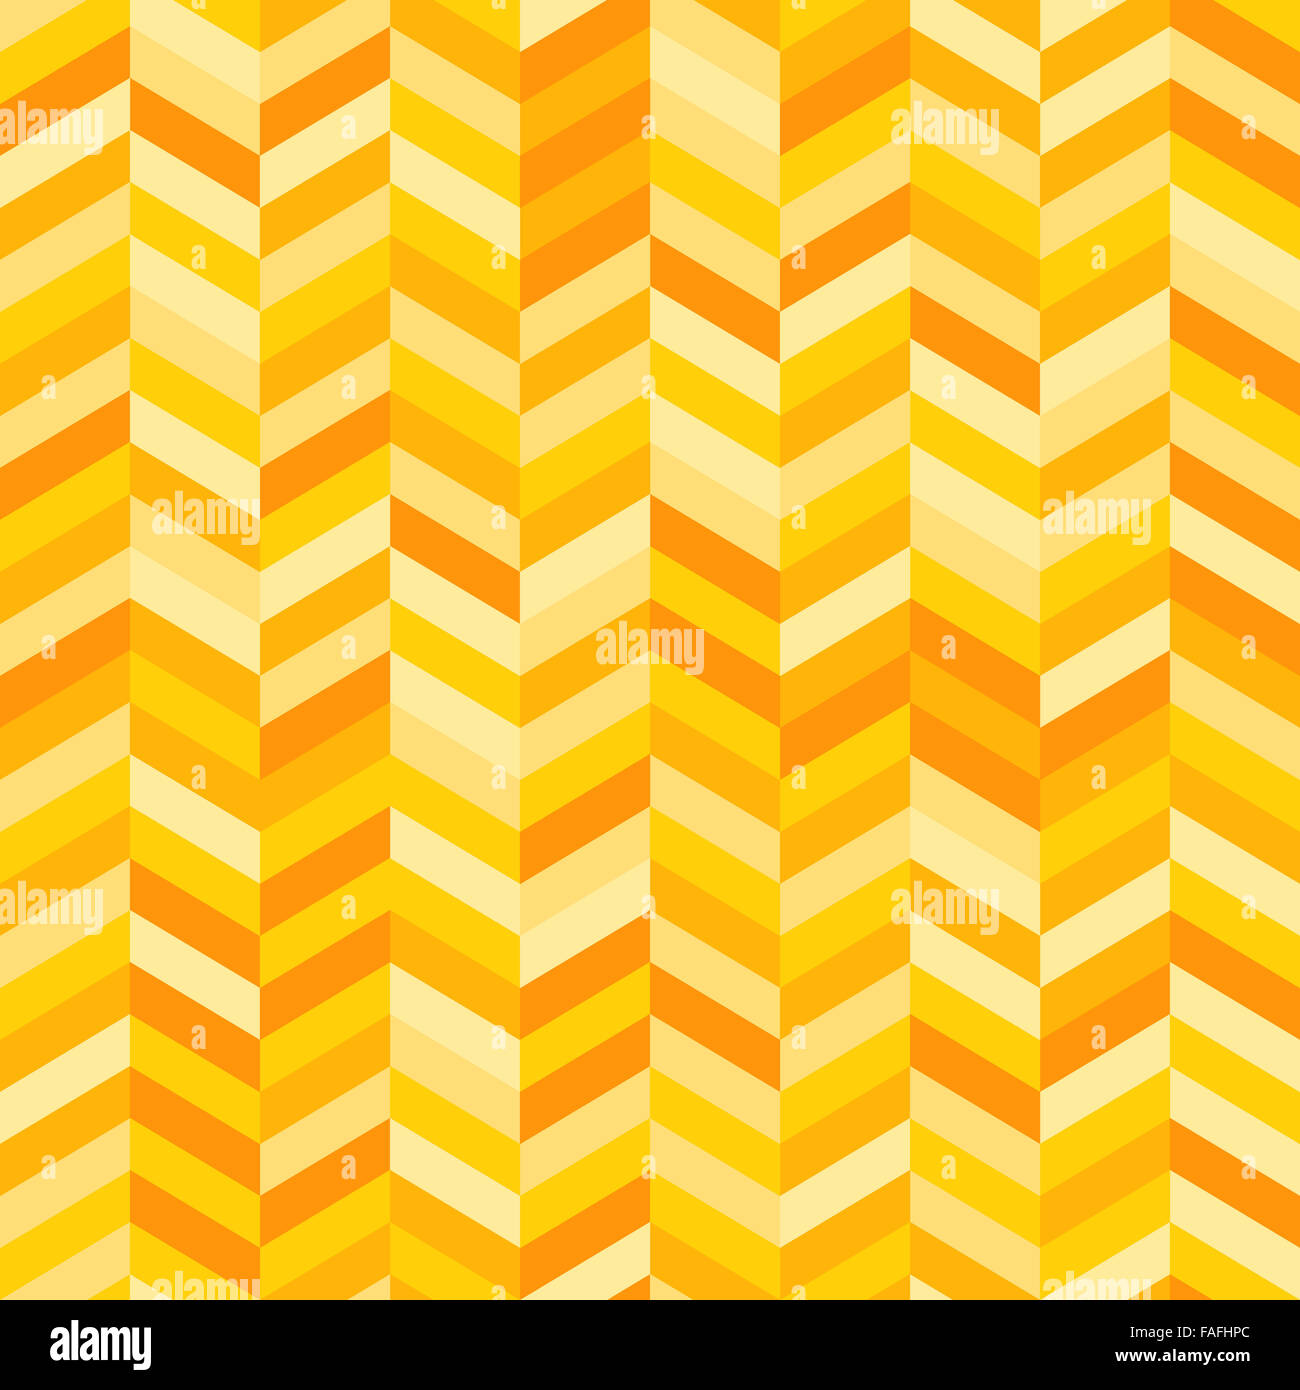 Zig Zag Background in Shades of Yellow and Orange - Stock Image